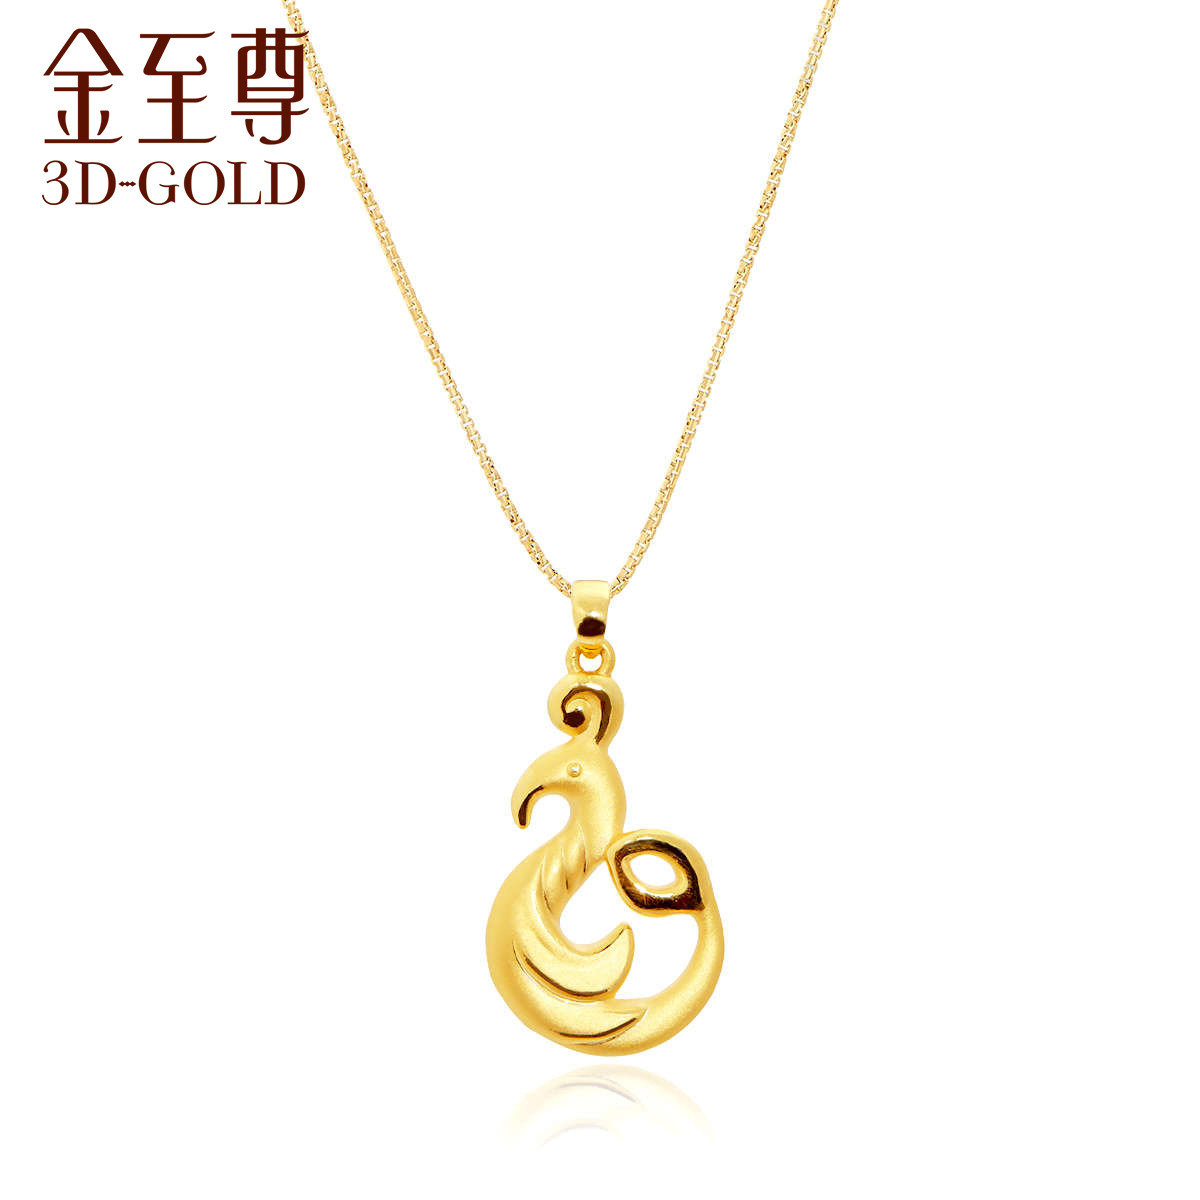 Au999 Gold electroformed Pendant Collection